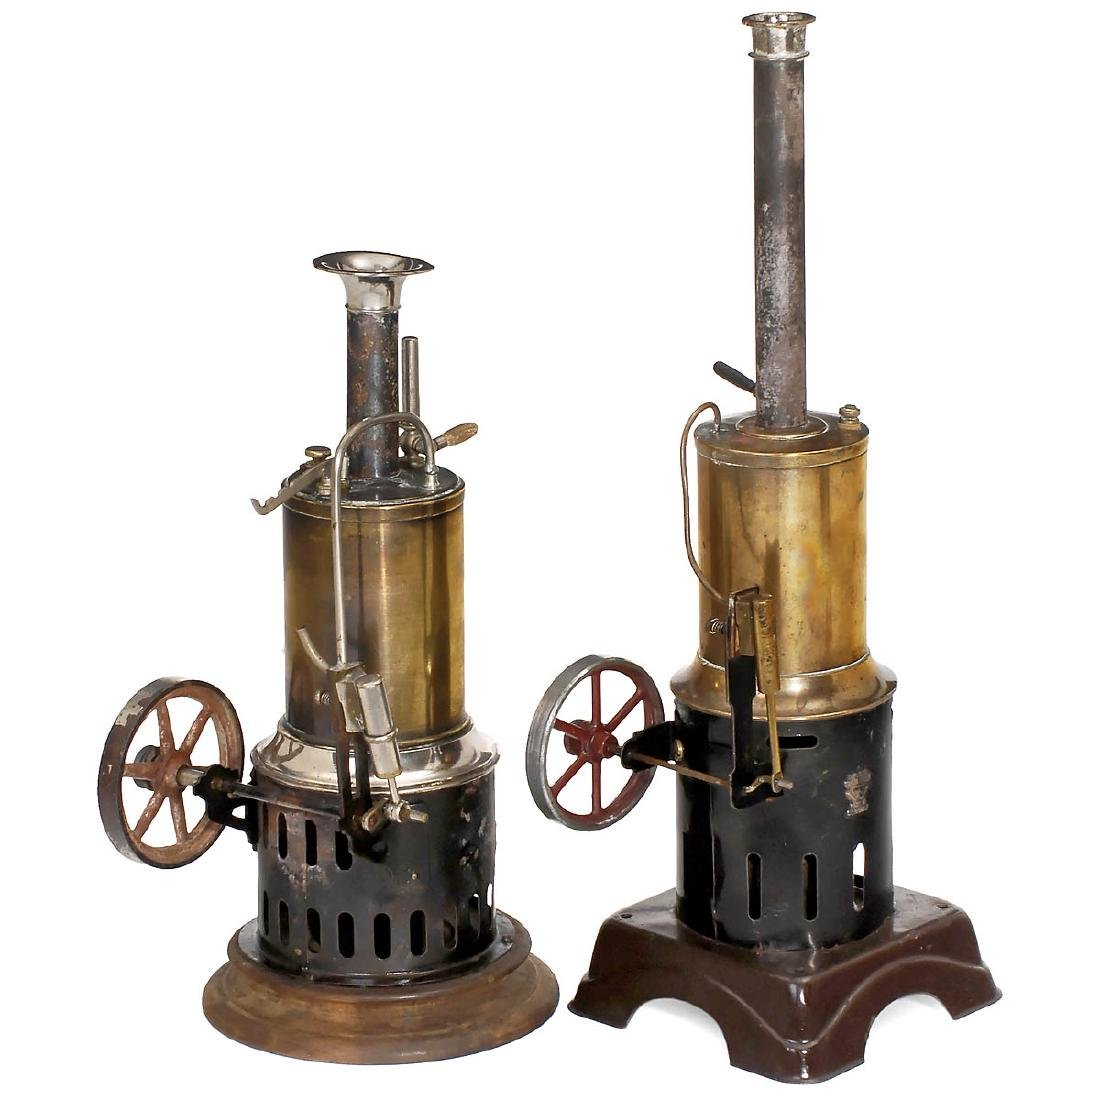 2 Toy Steam Engines, c. 1925